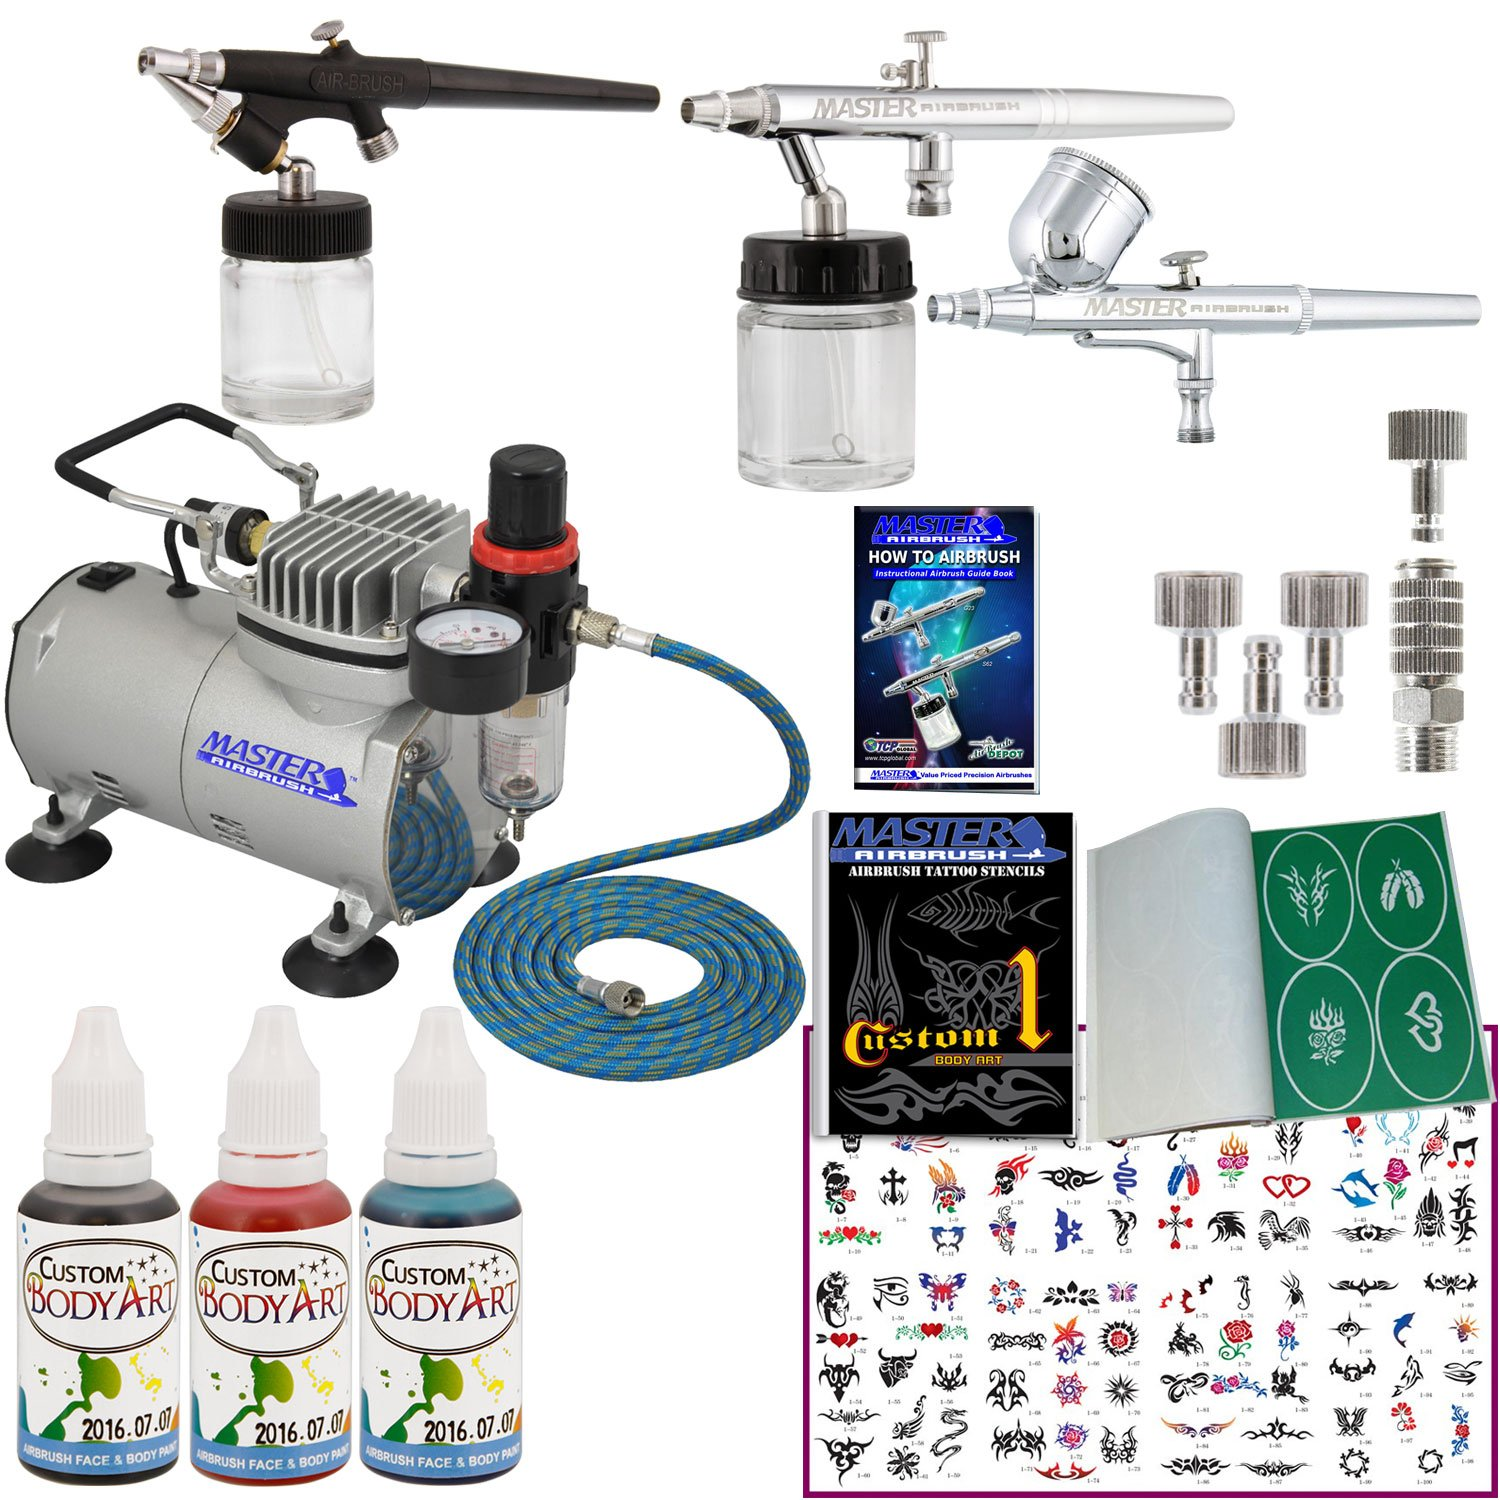 Master Airbrush Tattoo System 3 Airbrushes, Air Compressor, Book of 100 Stencils, 6' Hose, Airbrush Holder, 3 Quick Couplers, Black, Red & Blue Temporary Tattoo Ink & How to Airbrush Training Book 6' Hose ABD KIT-TAT-3AIR